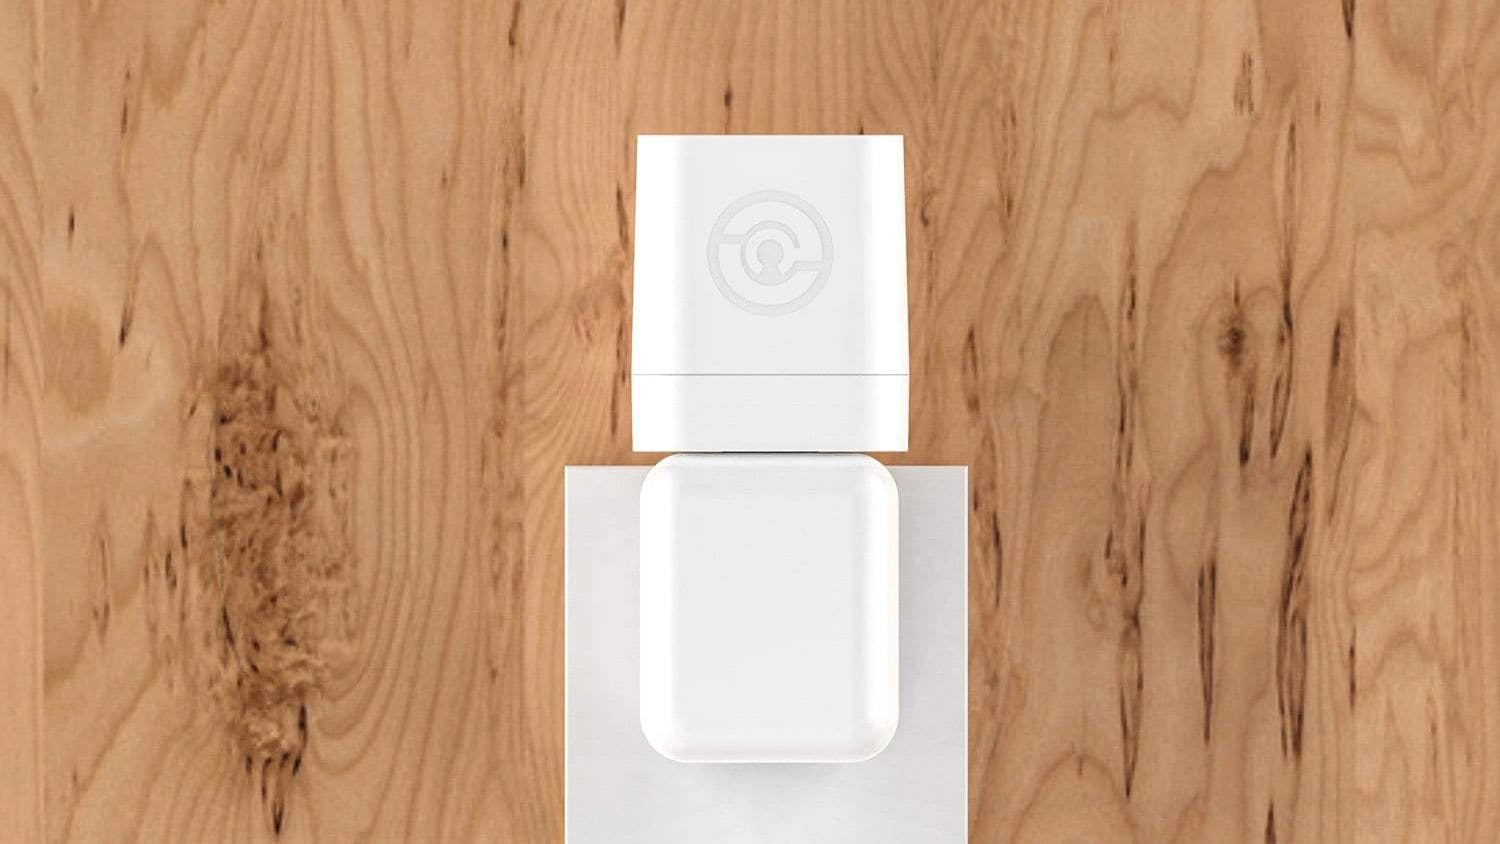 Lockly Secure Link Wifi Hub + Door Sensor